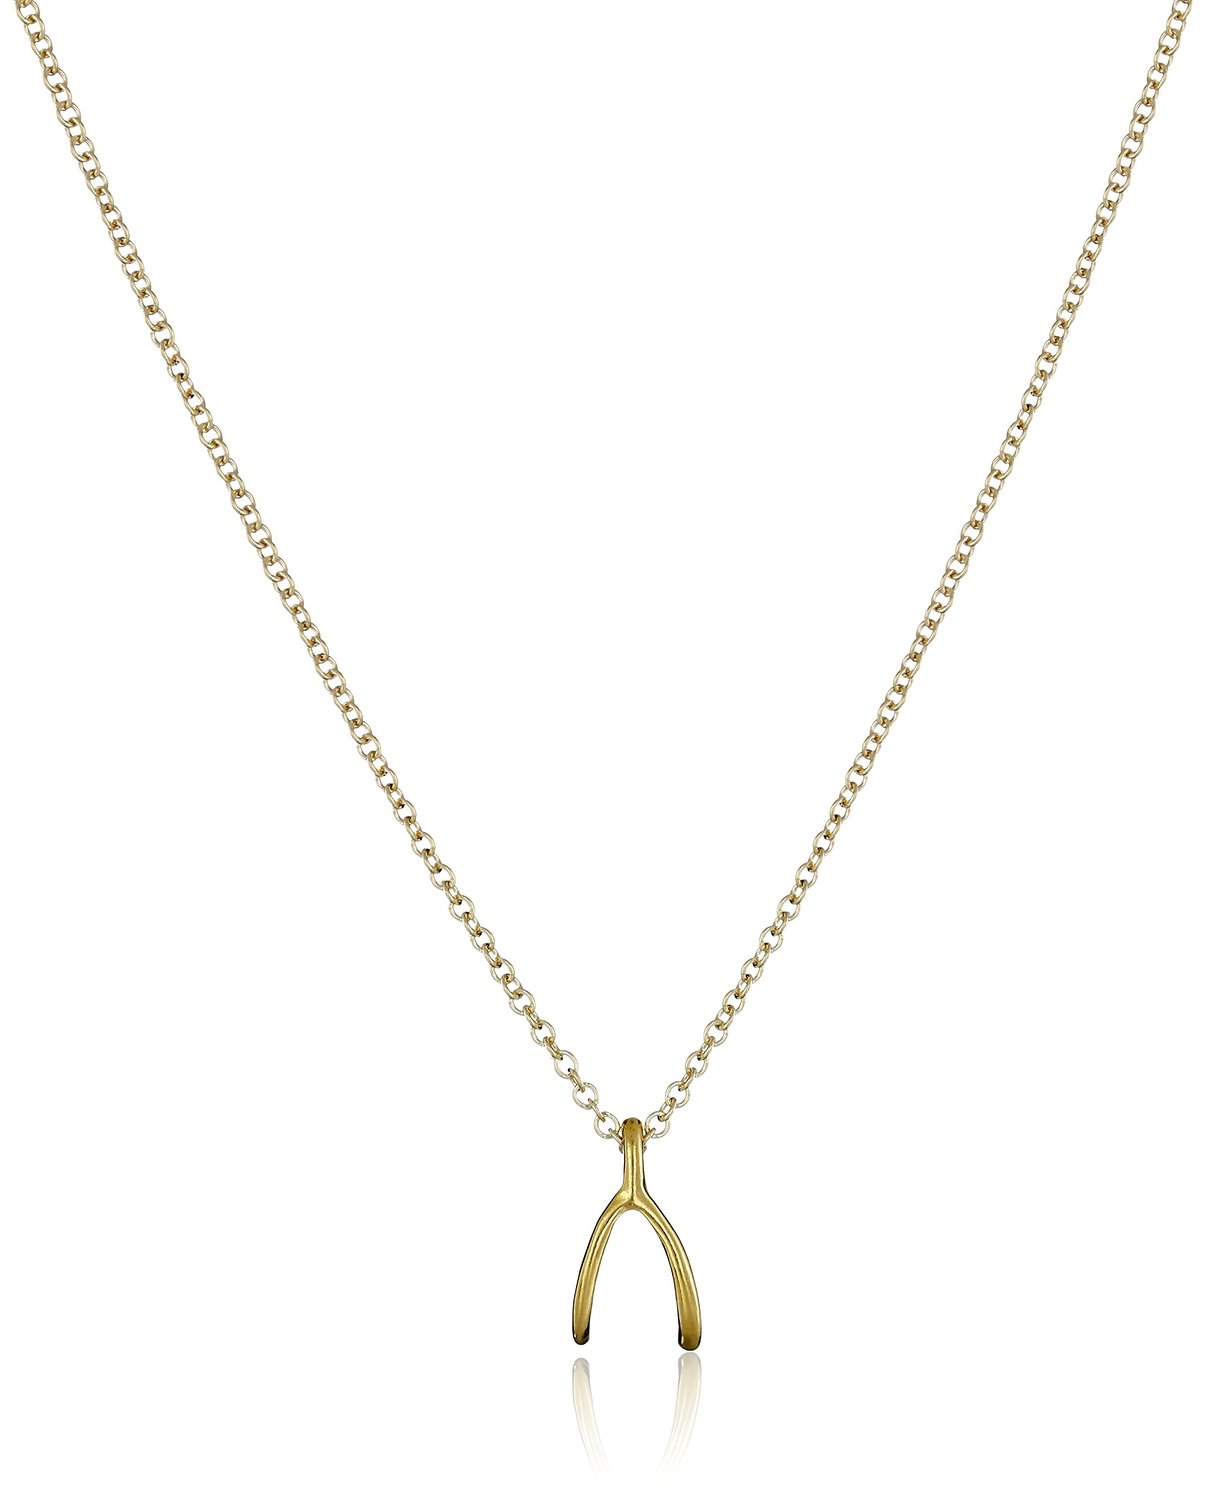 Dogeared Reminder Wishbone Gold Chain Necklace - MG1627